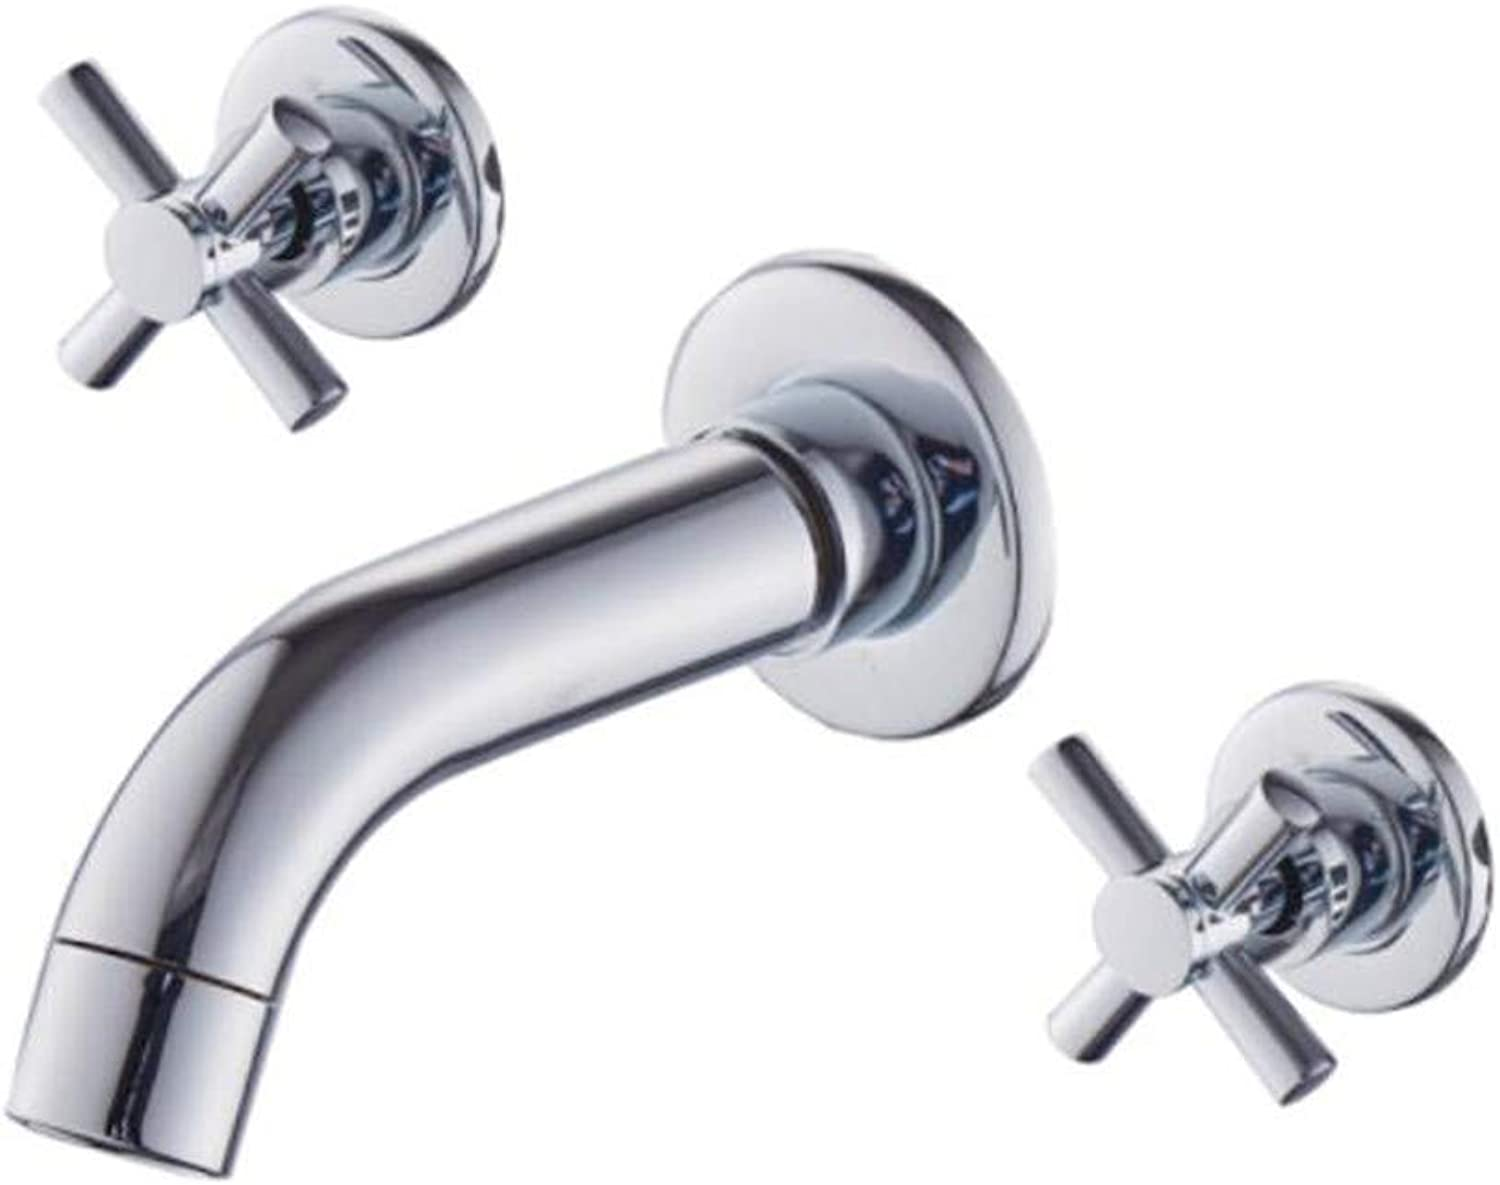 Taps Mixer?Swivel?Faucet Sink The Bathroom Cabinet is Equipped with A Faucet with A Face Basin and A Wall-Mounted Three-Hole Copper Cold-Hot Washbasin Faucet.